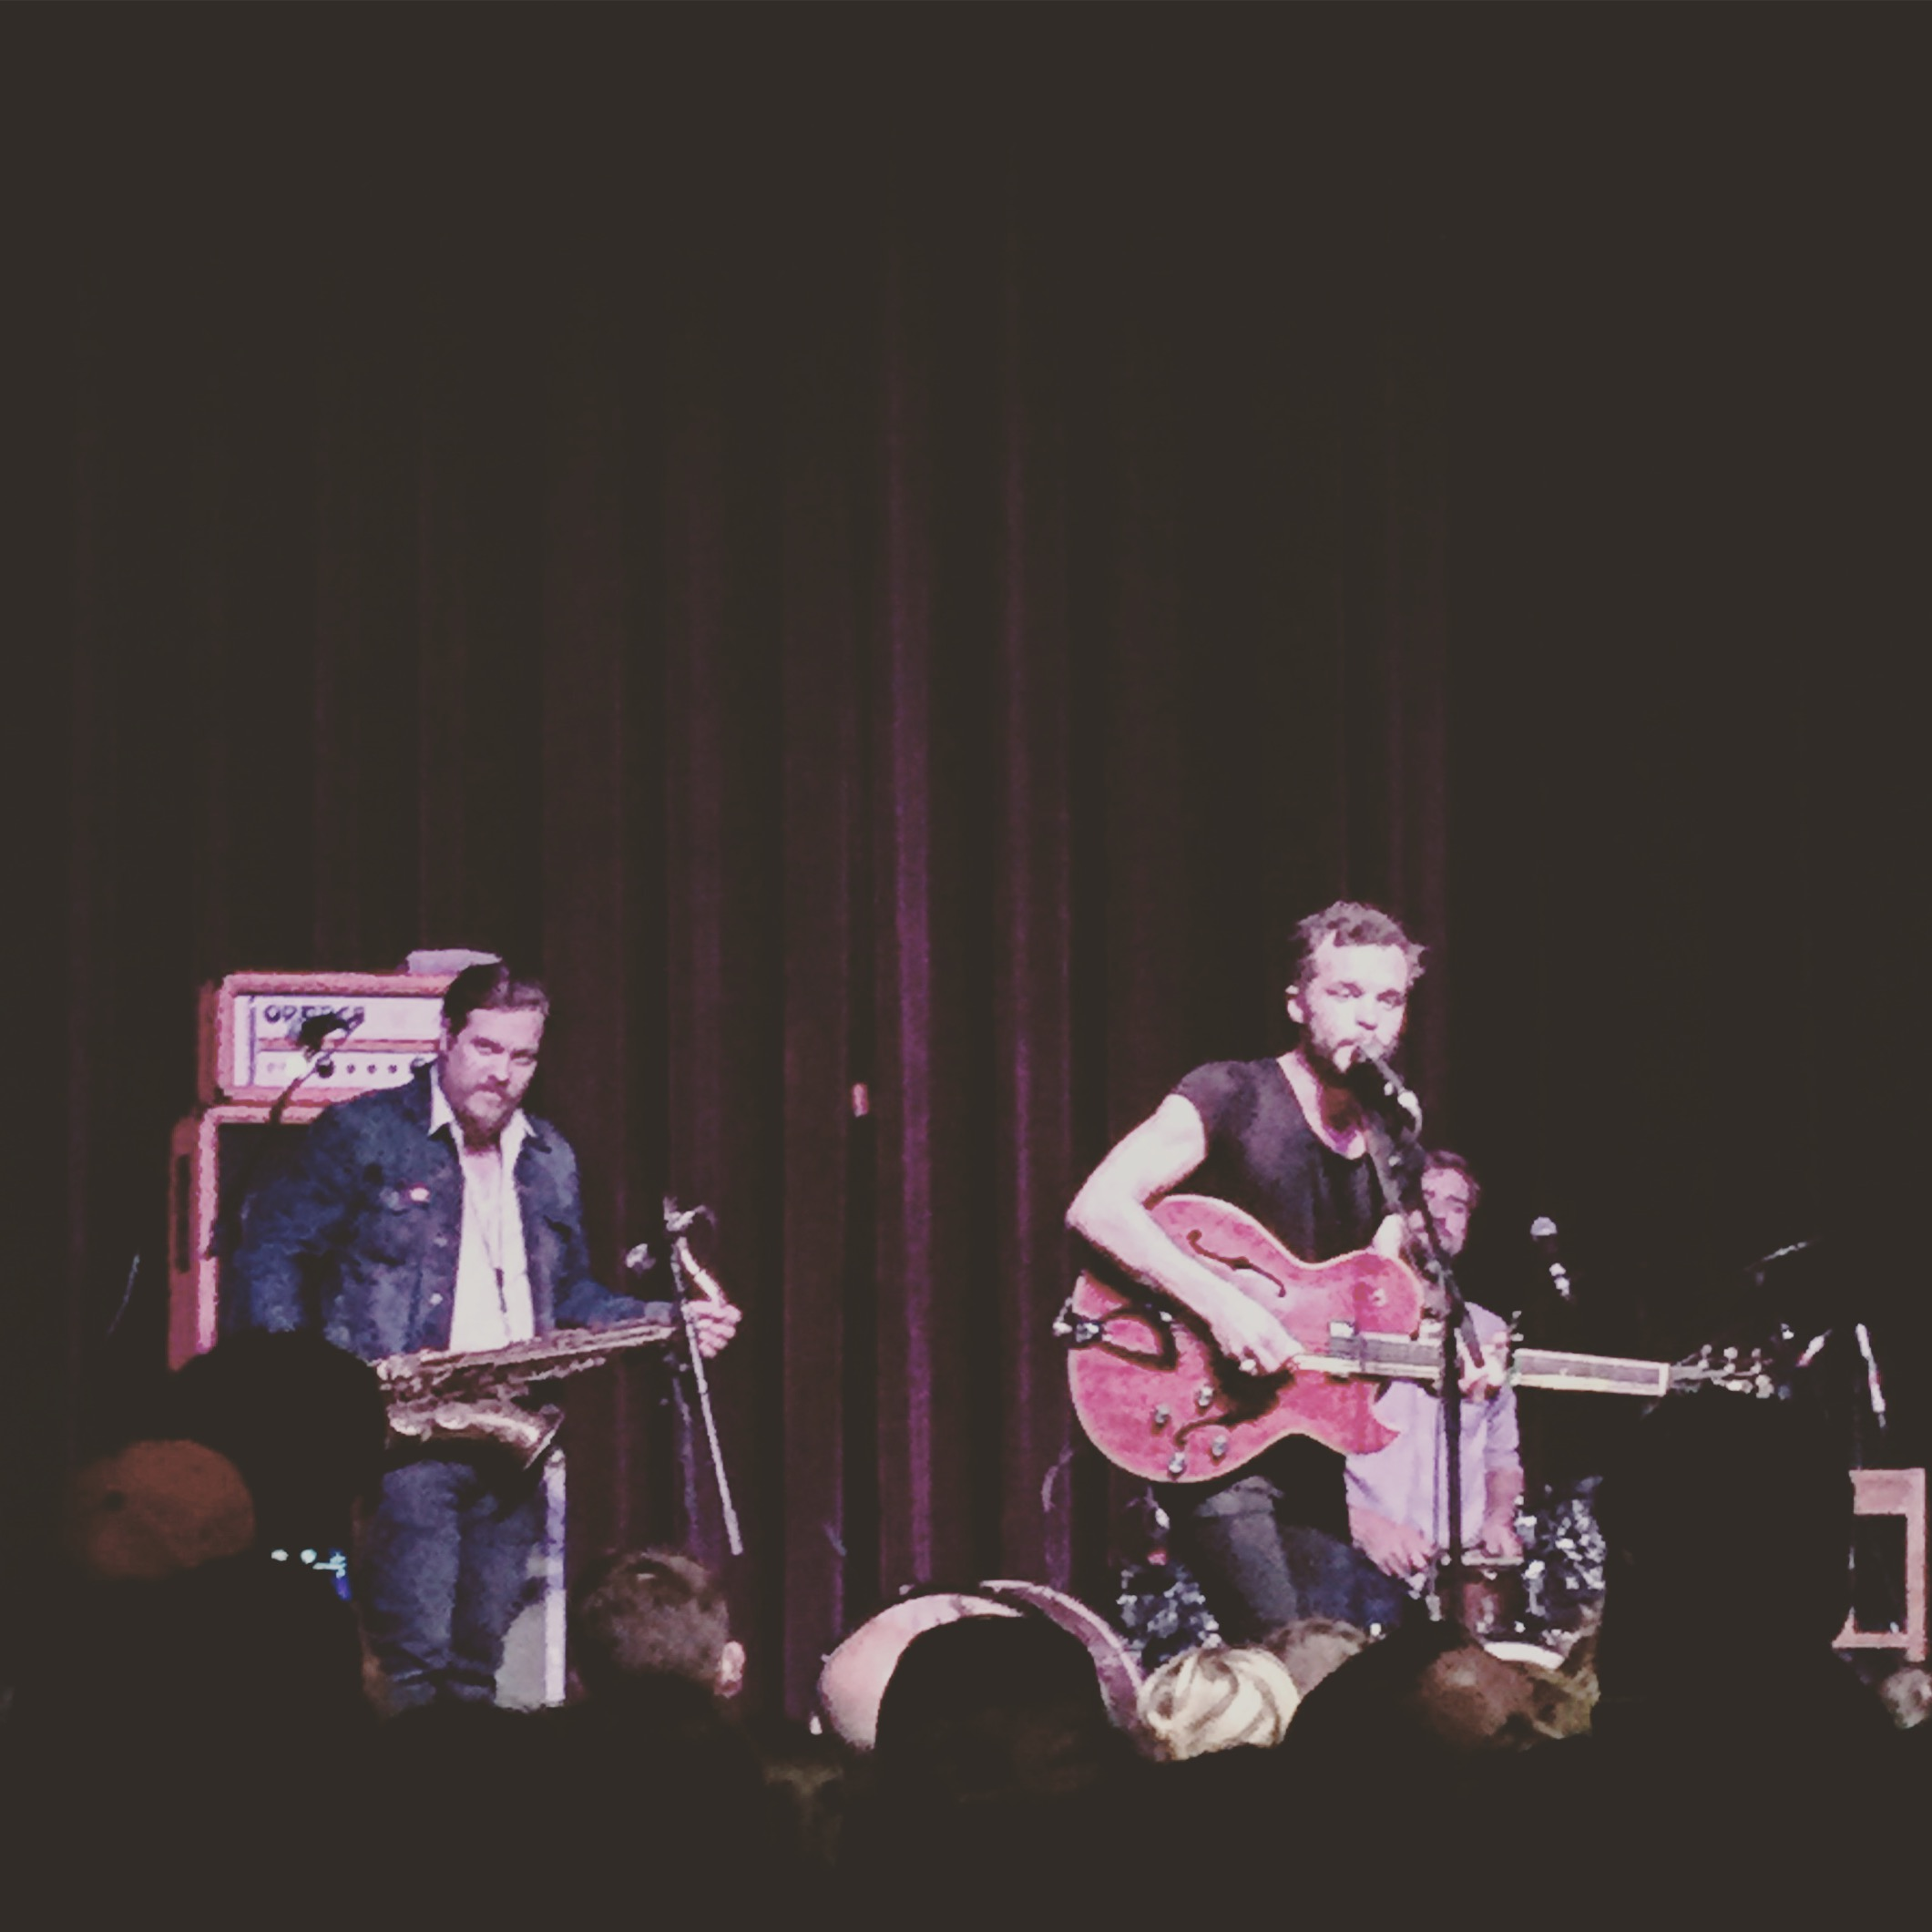 The Tallest Man on Earth at Asbury Hall (7/22/15)